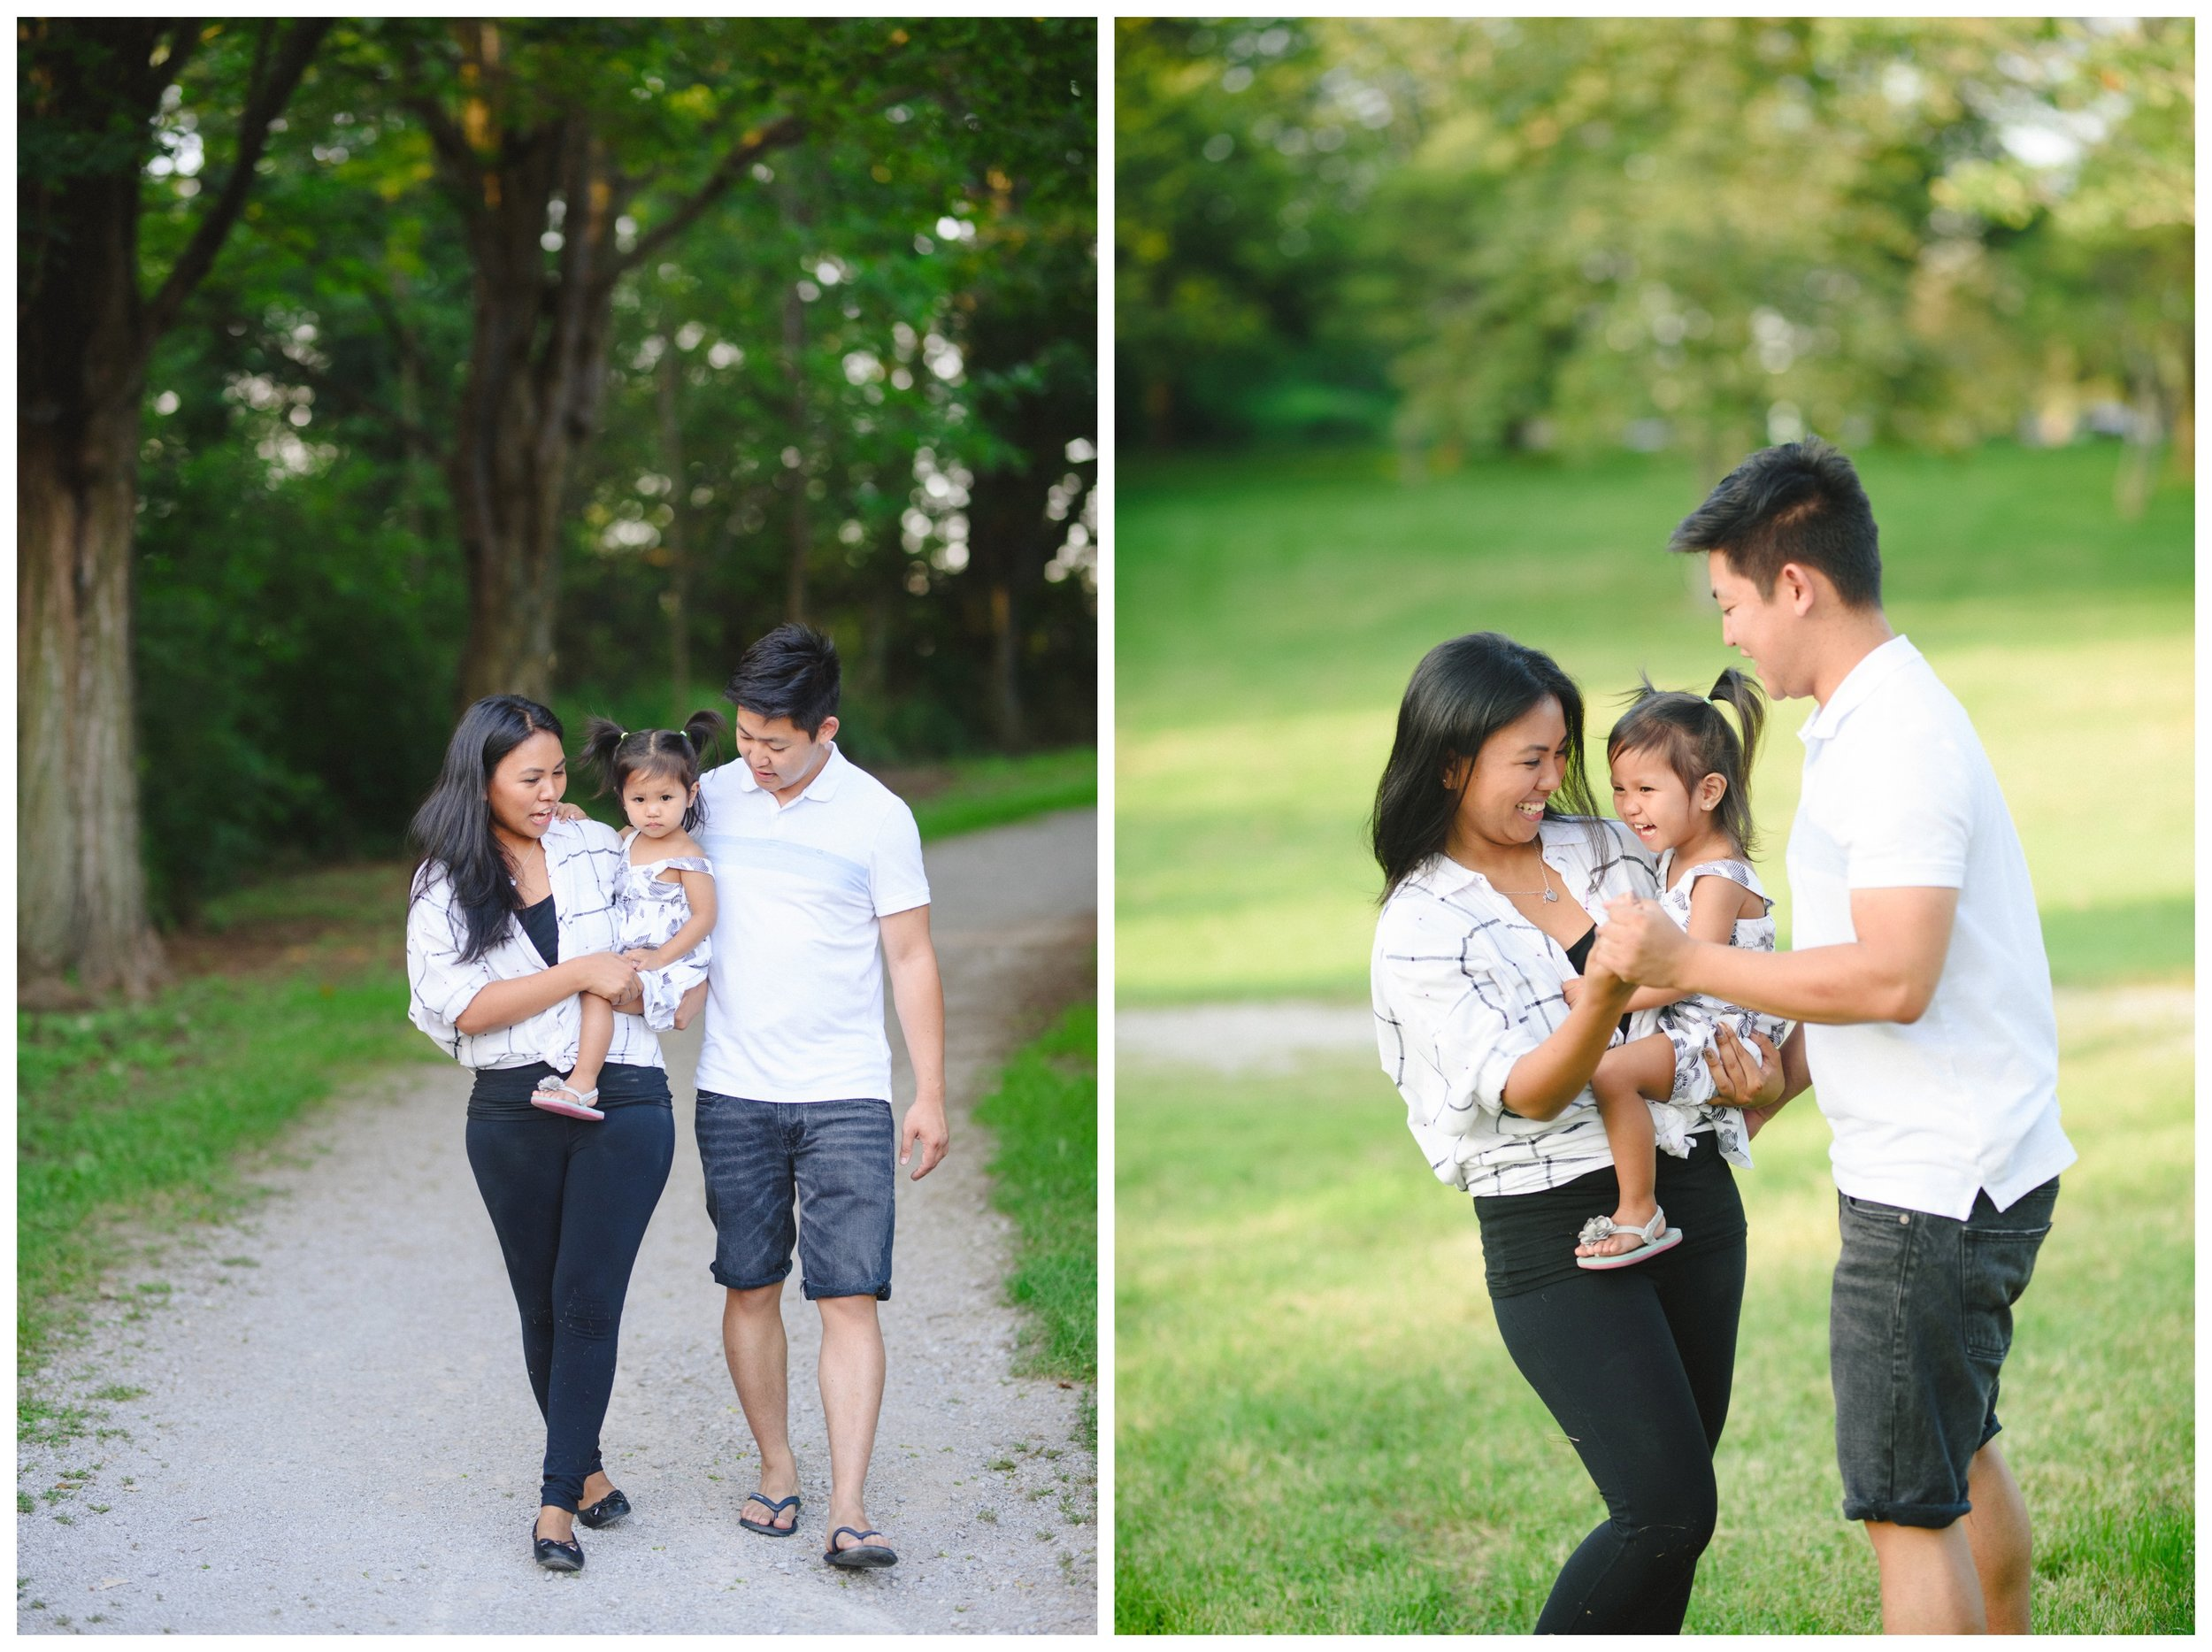 Pickering Family Photography